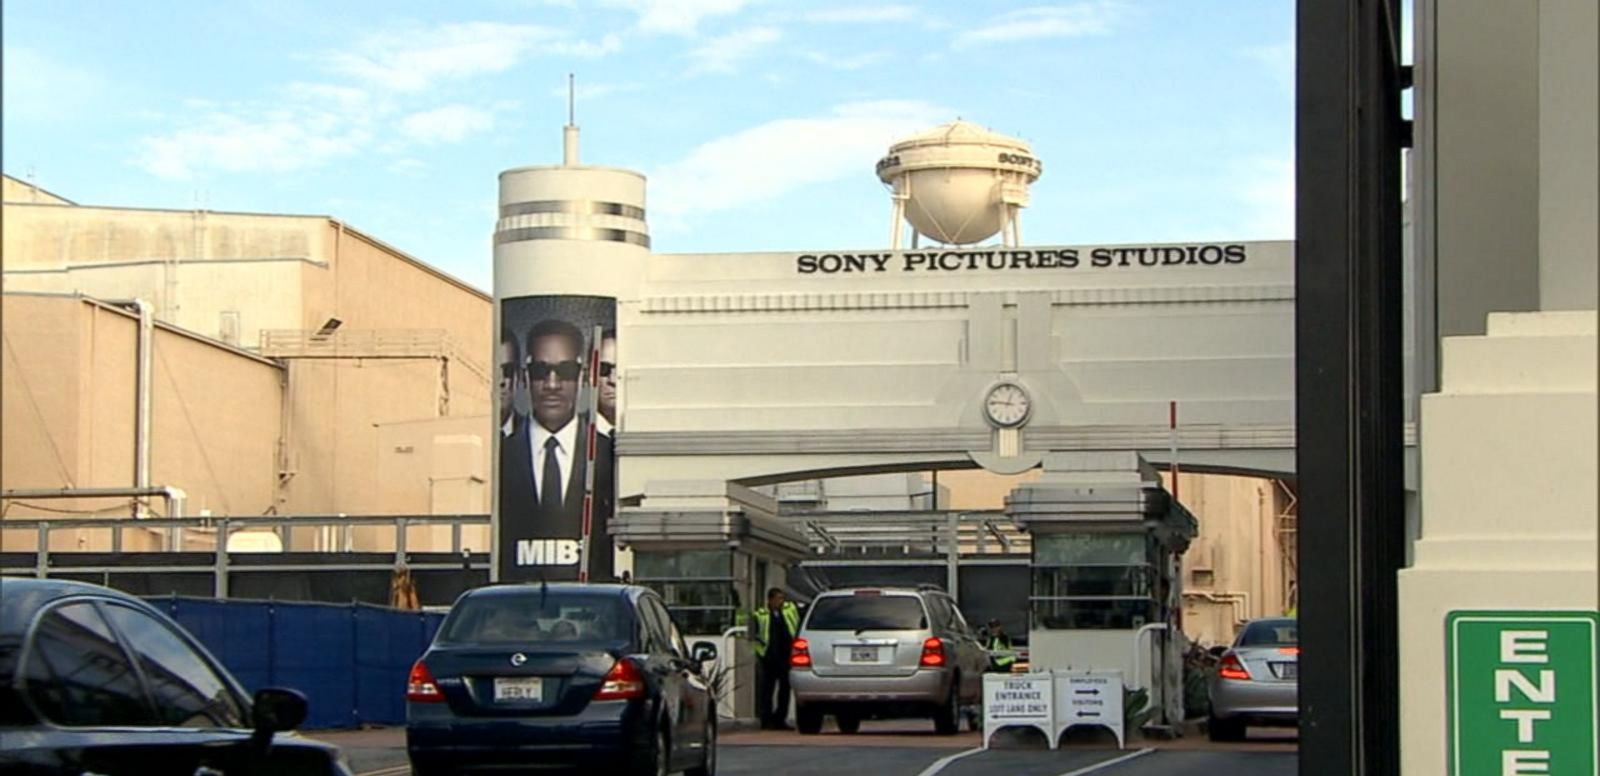 Sony Hackers Make New Threats Ahead of 'Interview' Release